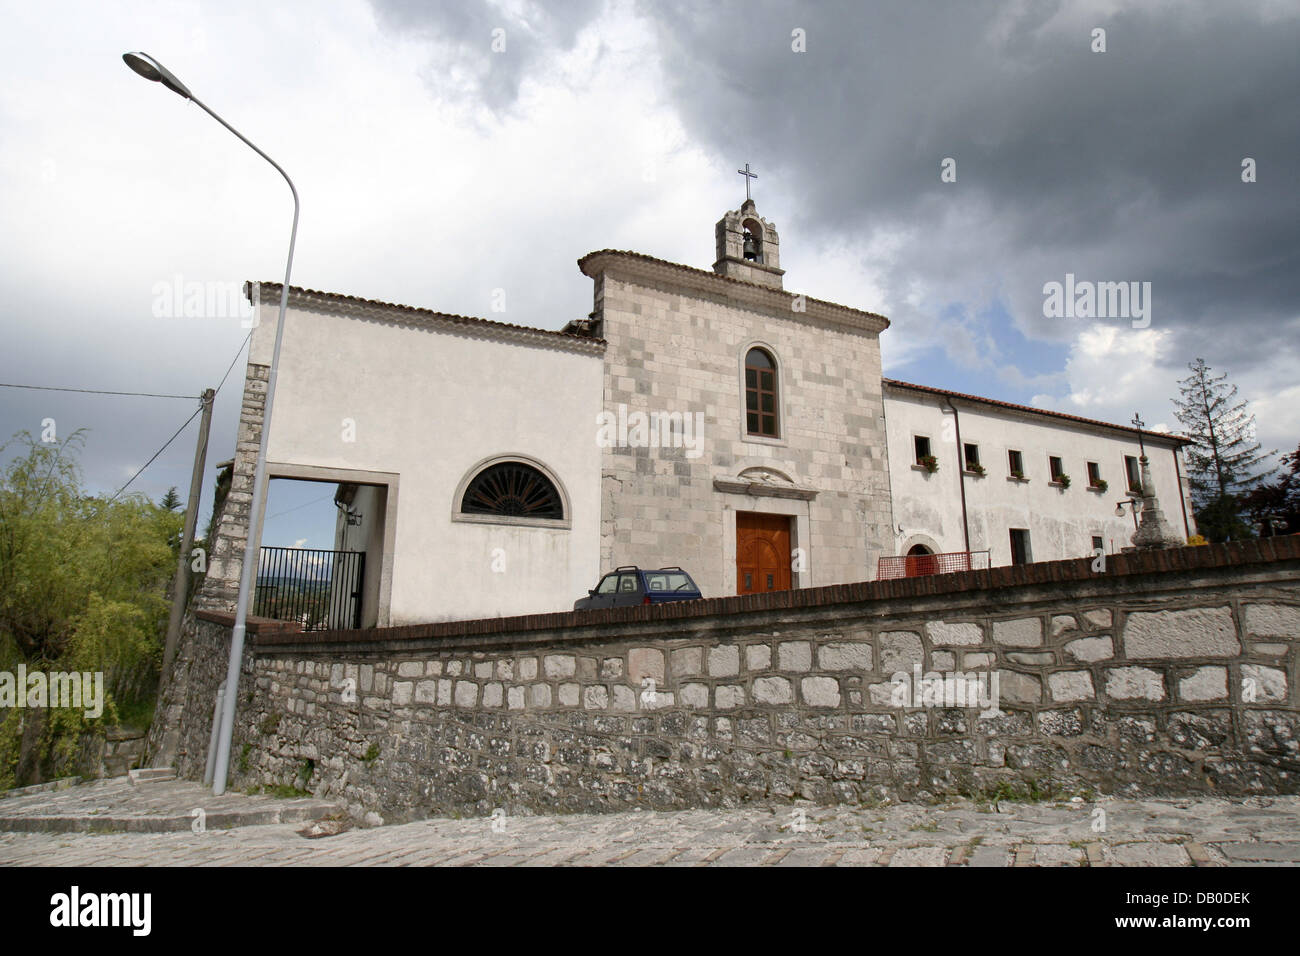 The picture shows Capuchin monastery which was home to the Italian saint Padre Pio from 1916 on in Morcone, Italy, - Stock Image